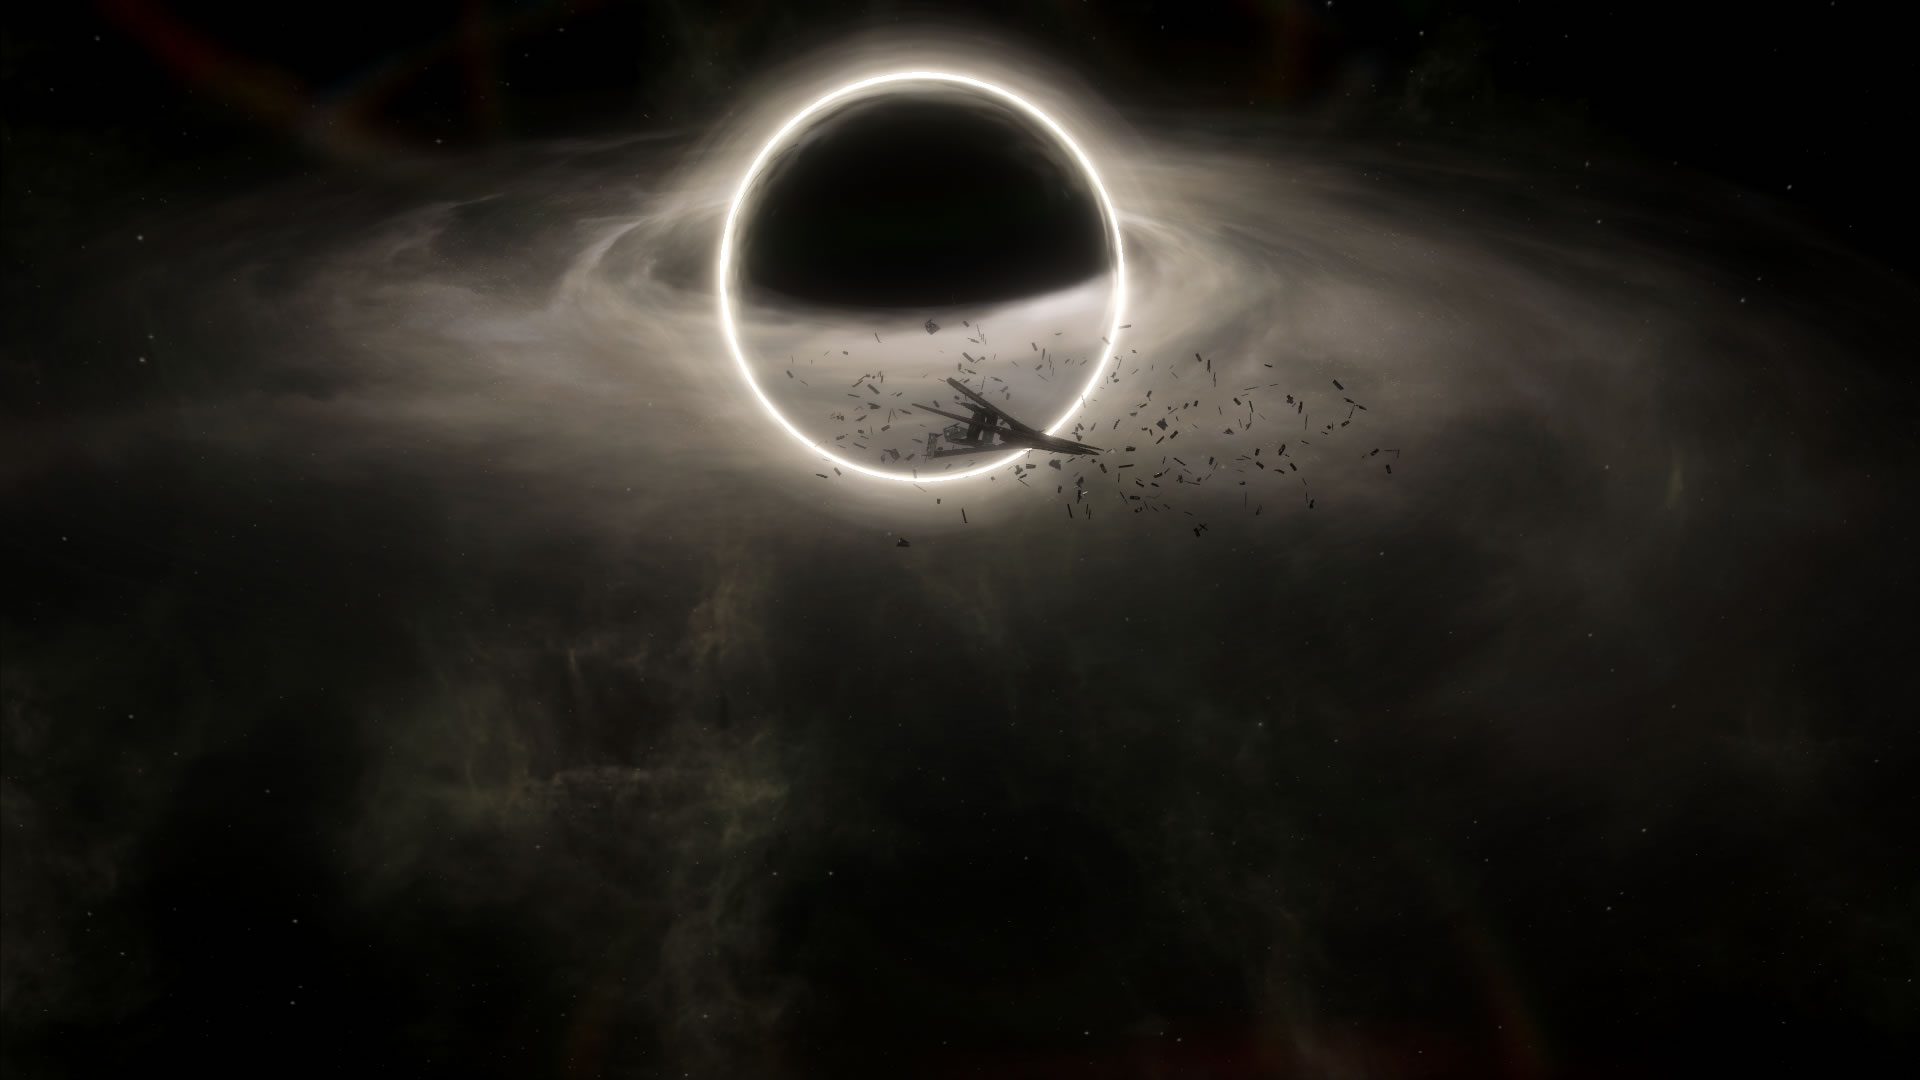 A Stellaris screenshot showing a broken ship in front of a black hole.